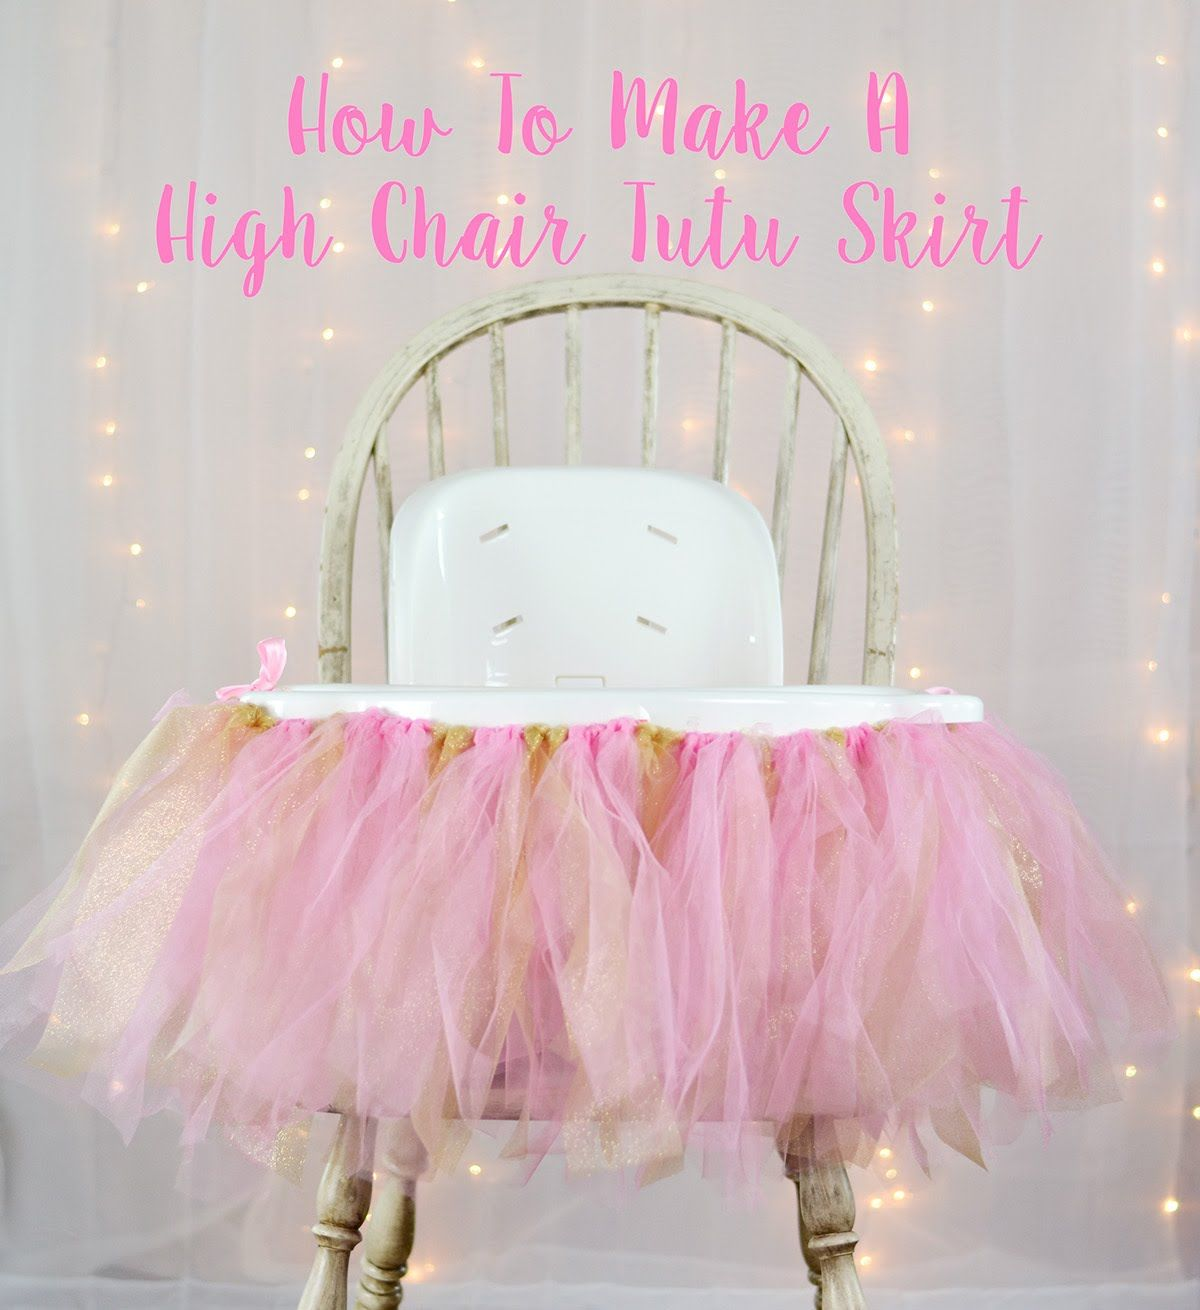 first high chair invented cover hire heathrow how to make a tutu skirt party decorations